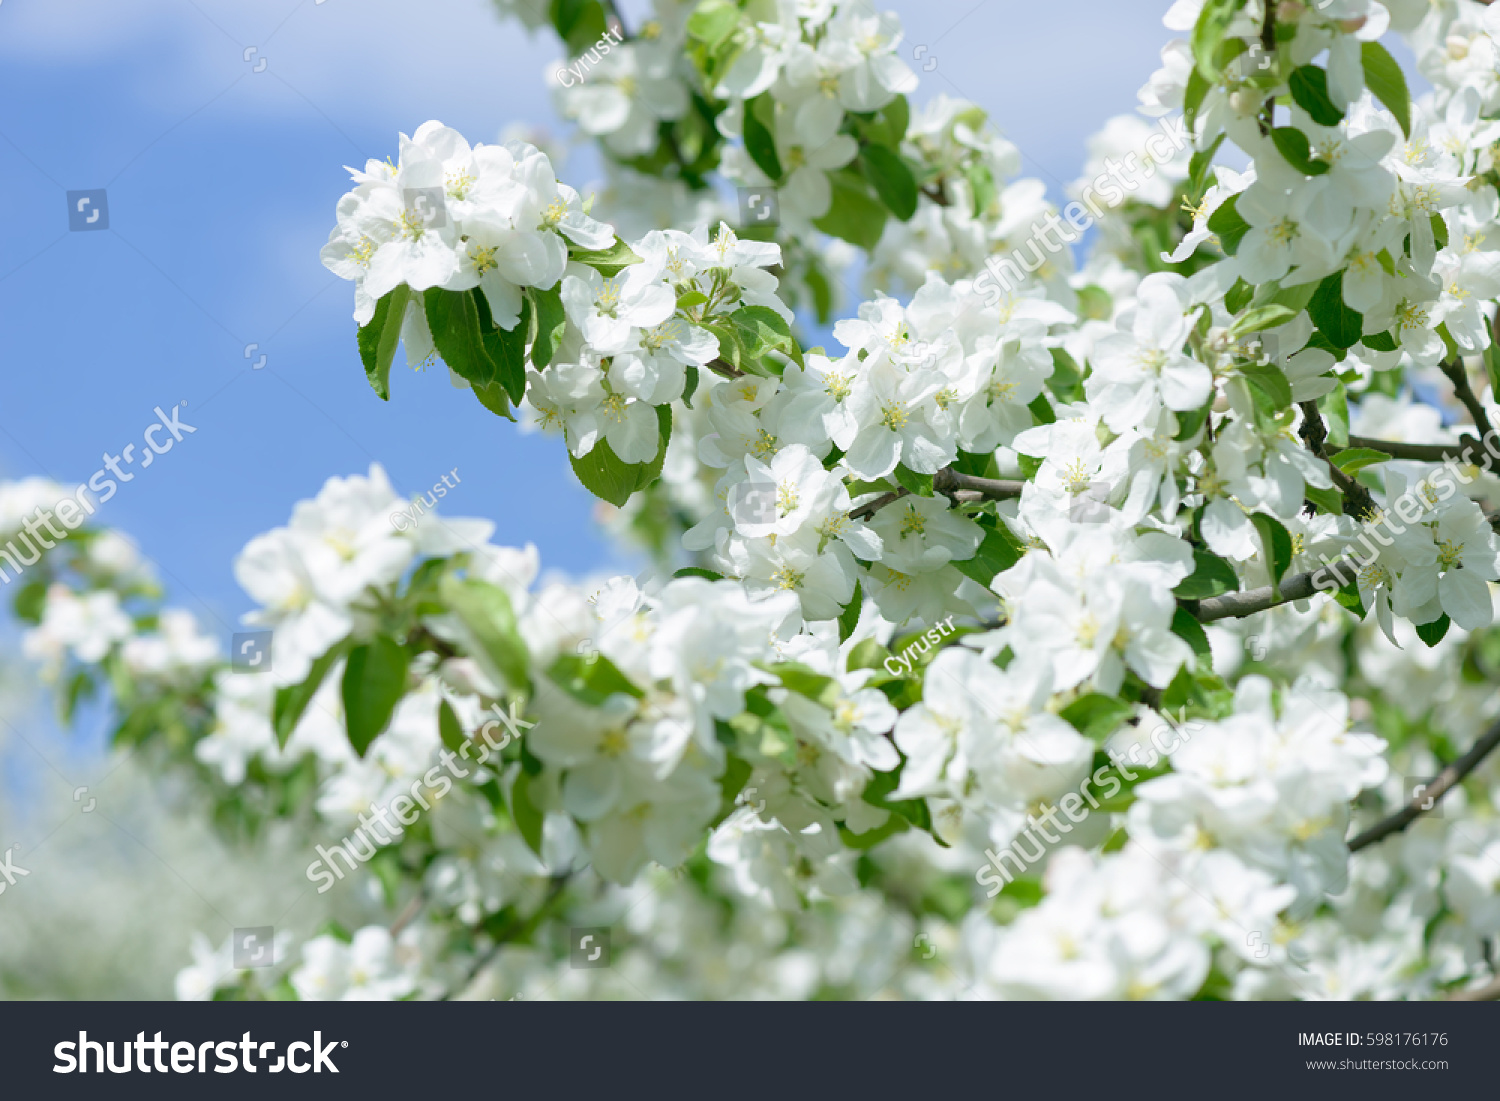 White Apple Flowers Beautiful Flowering Apple Trees Background